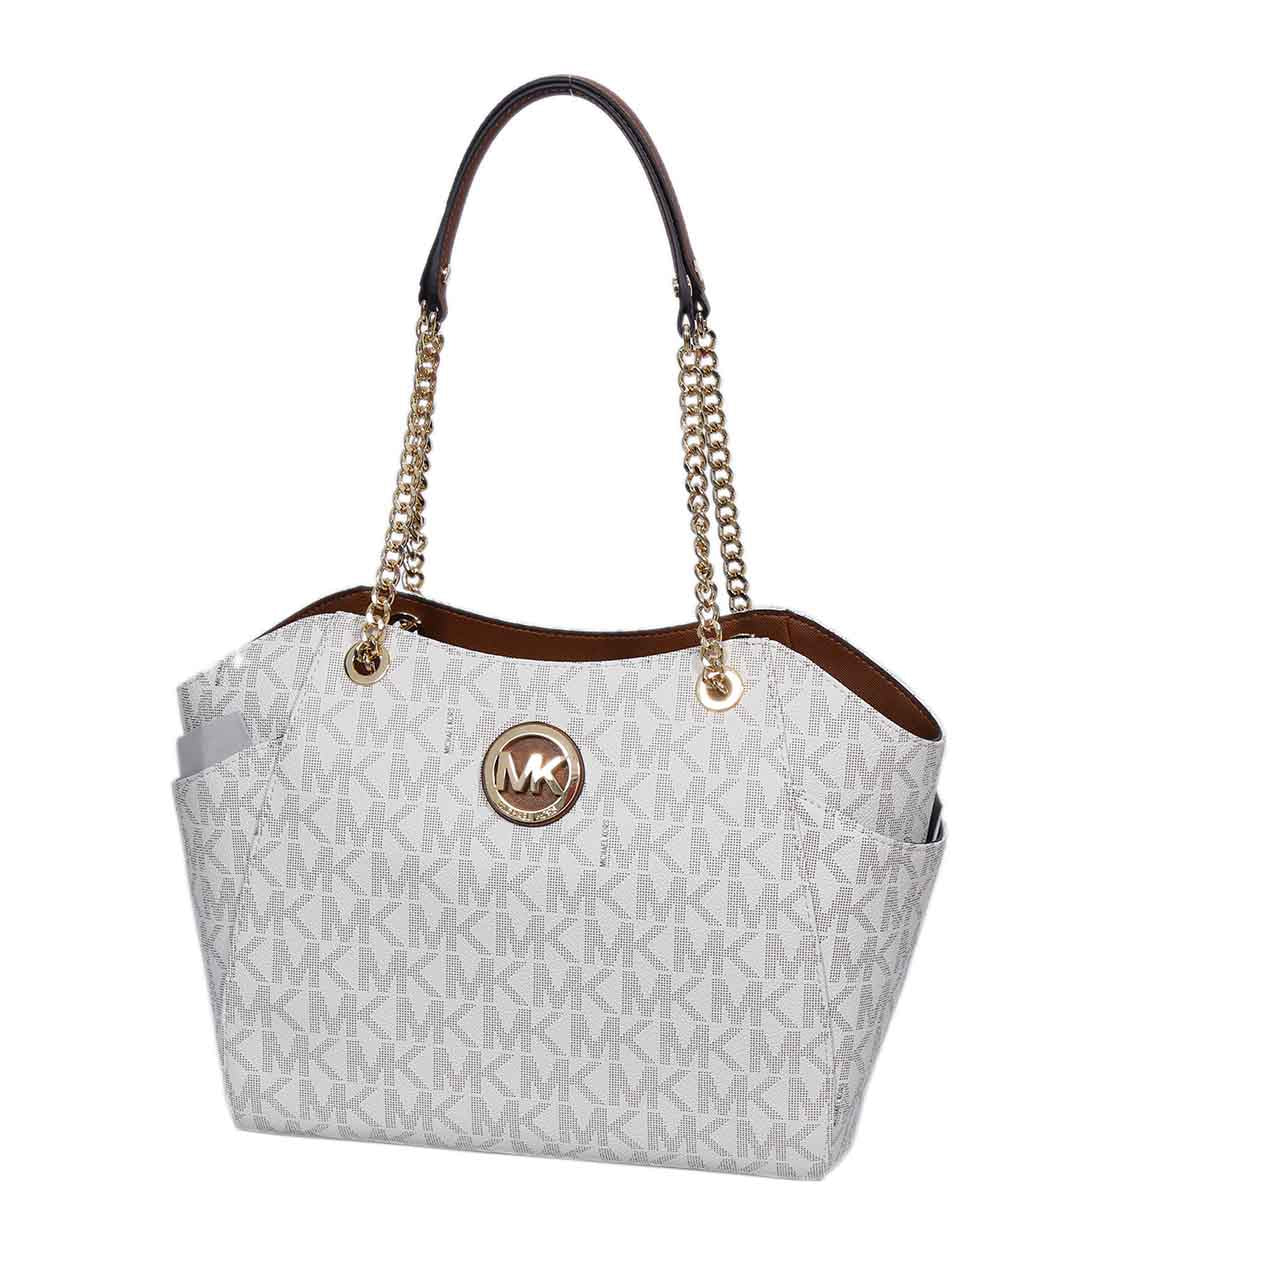 ee08f9549cf6ae MICHAEL KORS JET SET TRAVEL MONOGRAM LARGE CHAIN SHOULDER LEATHER TOTE ...